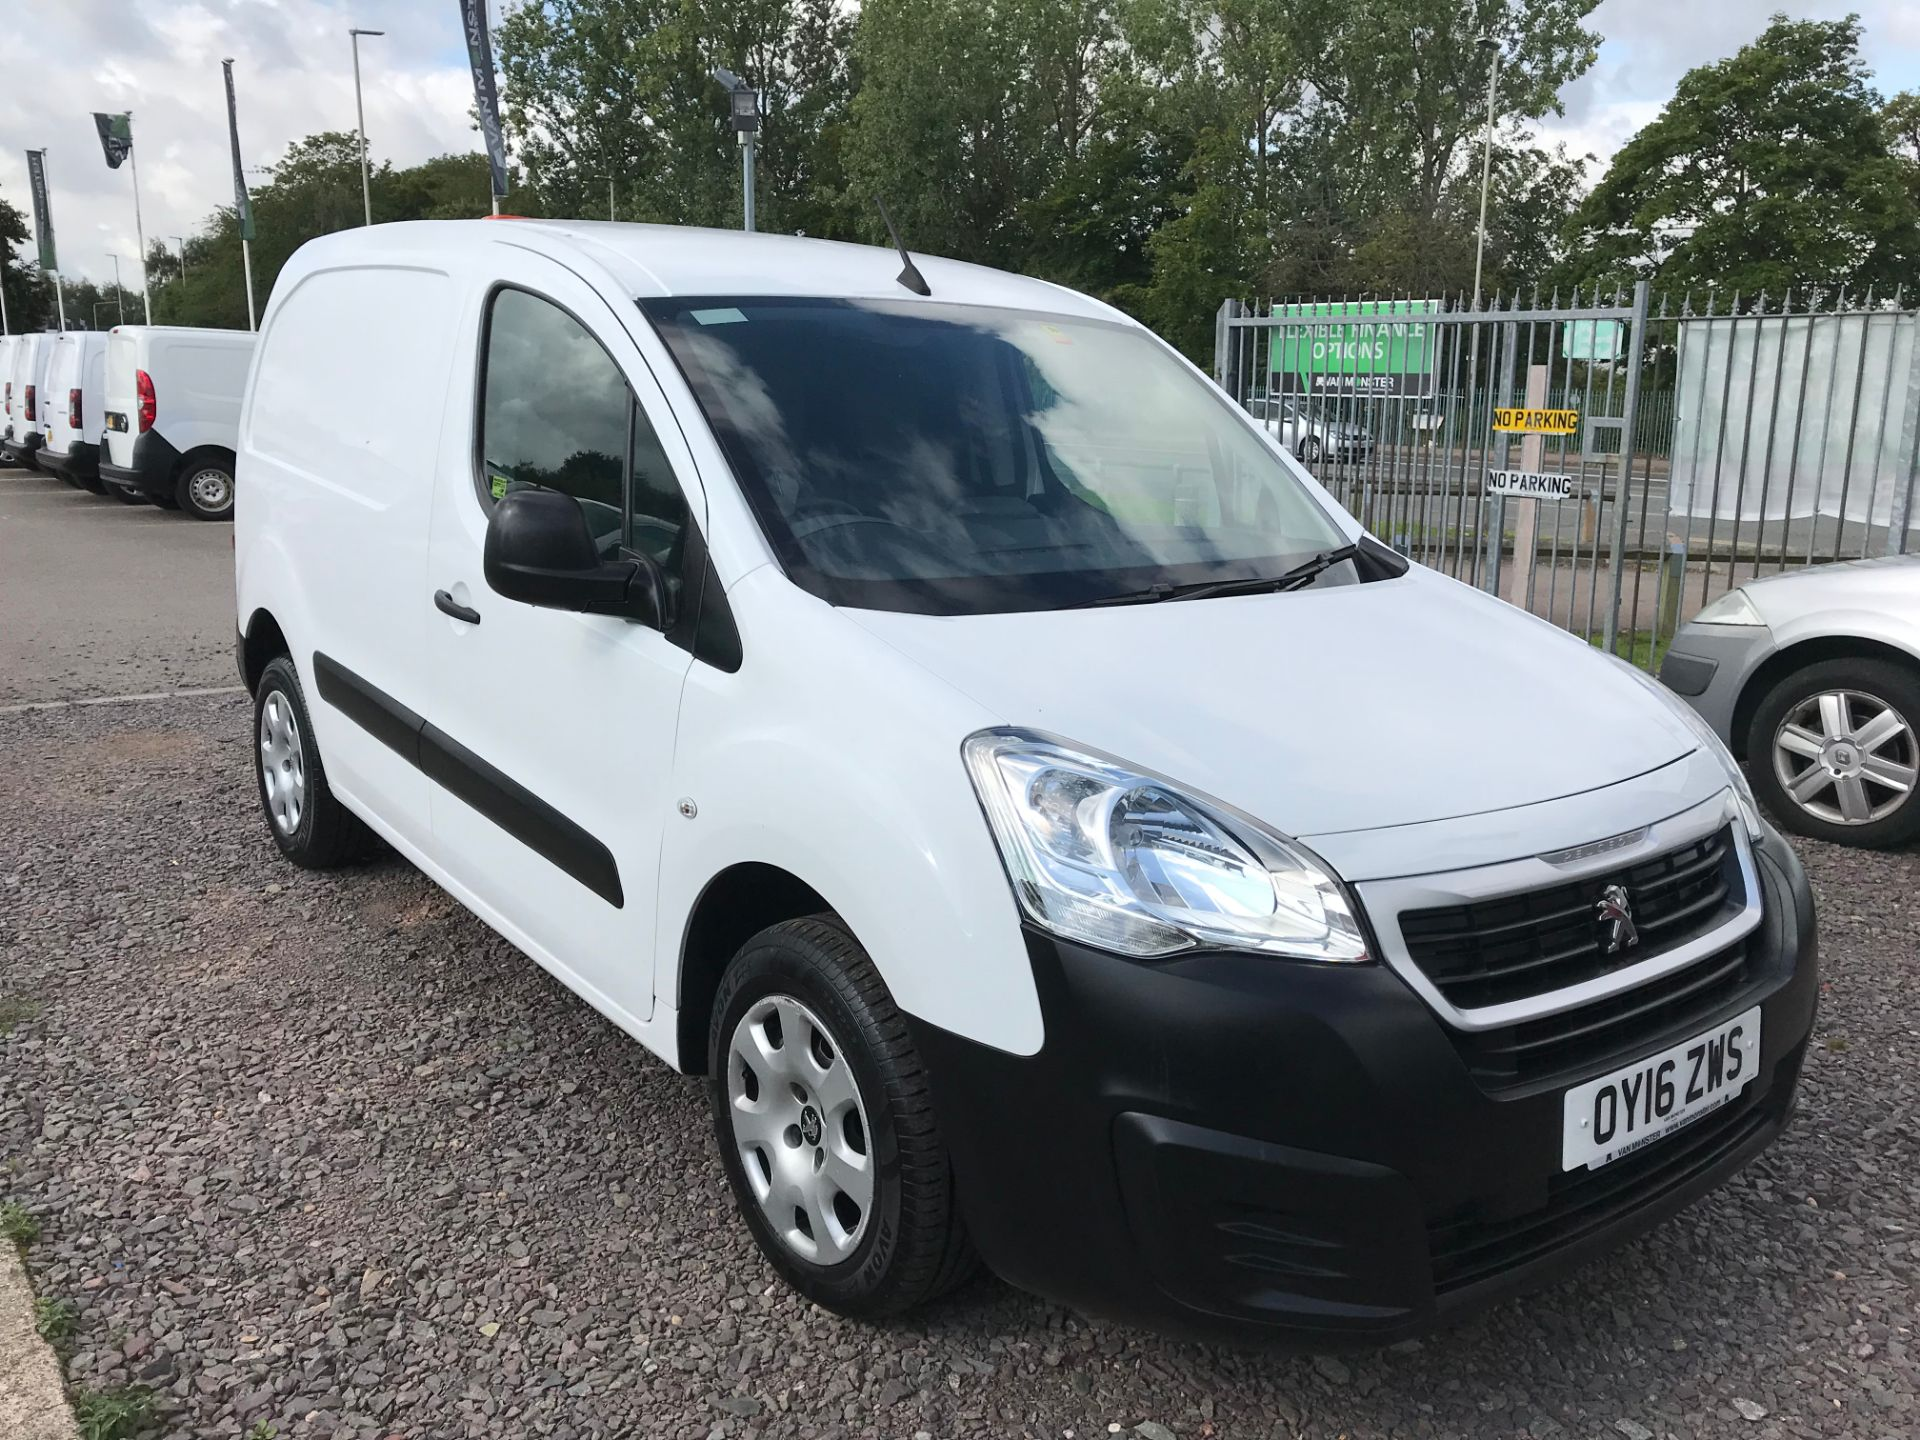 2016 Peugeot Partner L1 850 S 1.6 92PS (SLD) PROFESSIONAL 3 SEATS EURO 5  (OY16ZWS)